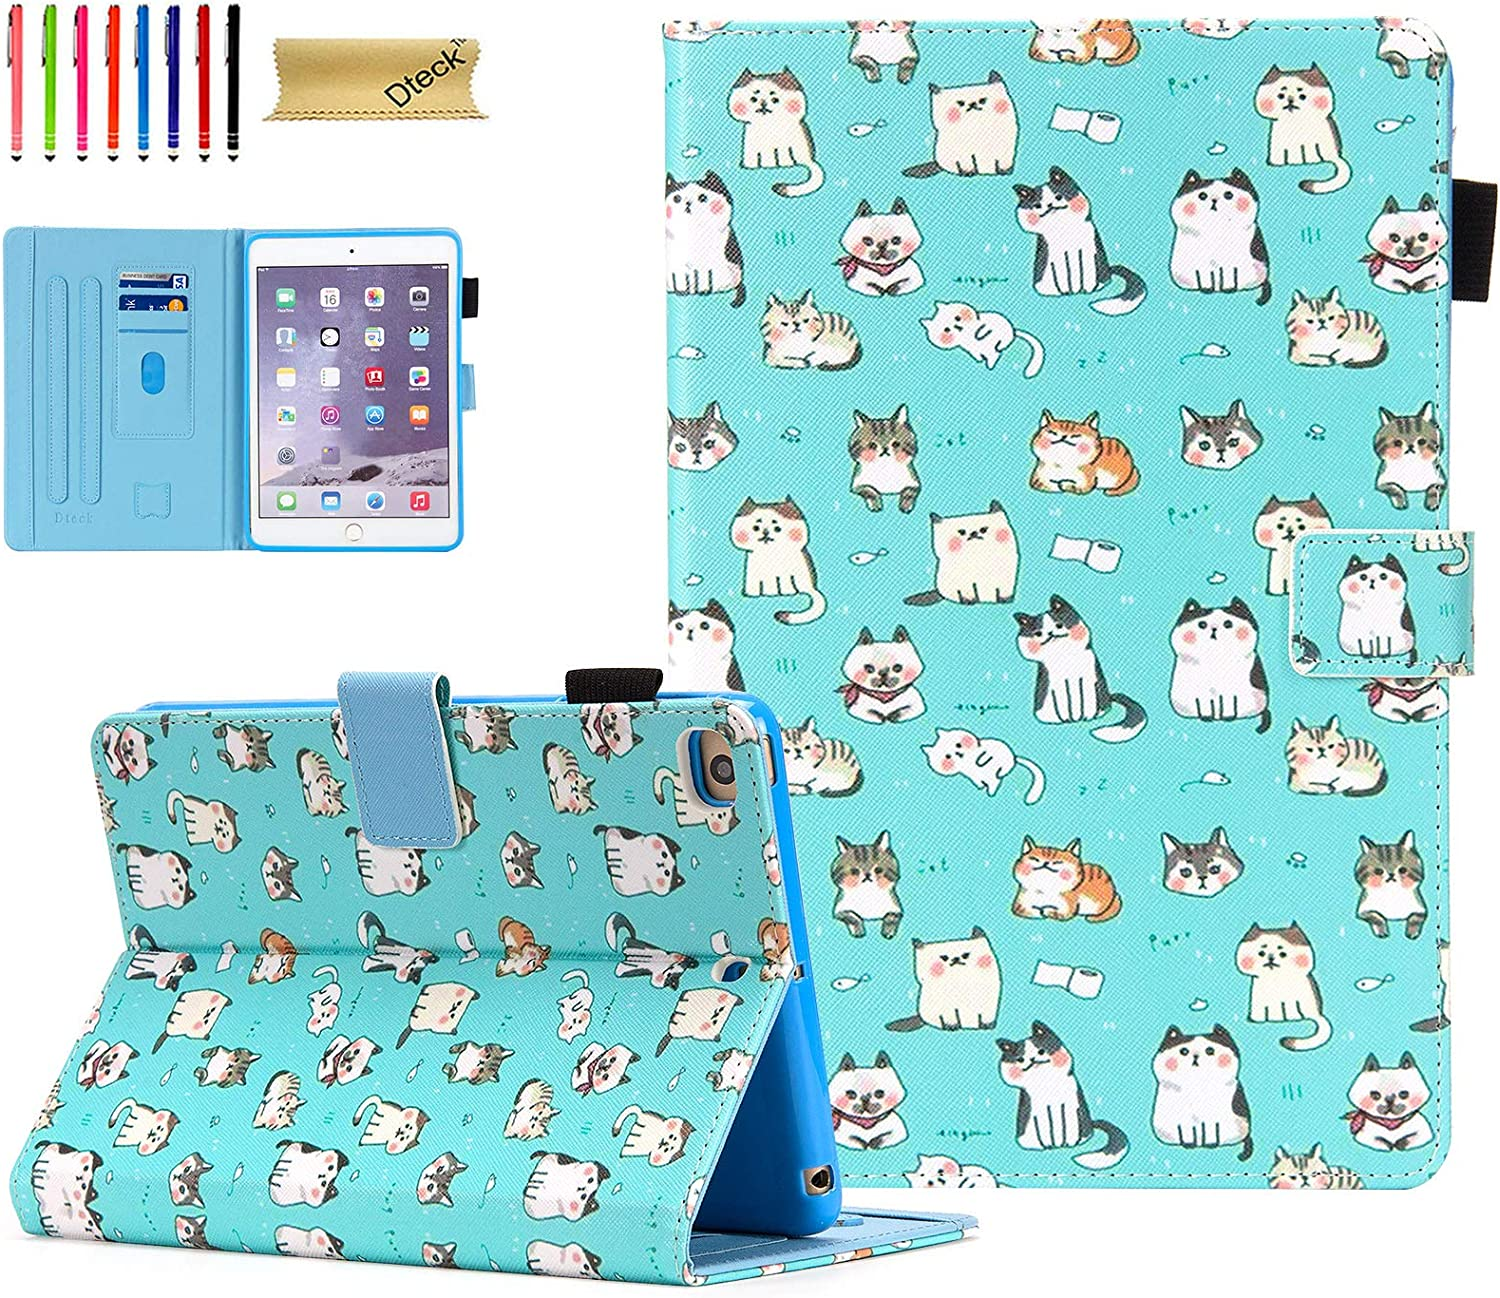 Dteck iPad Mini 5 Case/iPad Mini 4 Case/iPad Mini 3 2 1 Cases and Covers - Slim Folio Flip Stand Wallet Case Auto Wake/Sleep Magnet Smart Cover for Mini iPad 7.9 Inch Tablet, Cute Cats